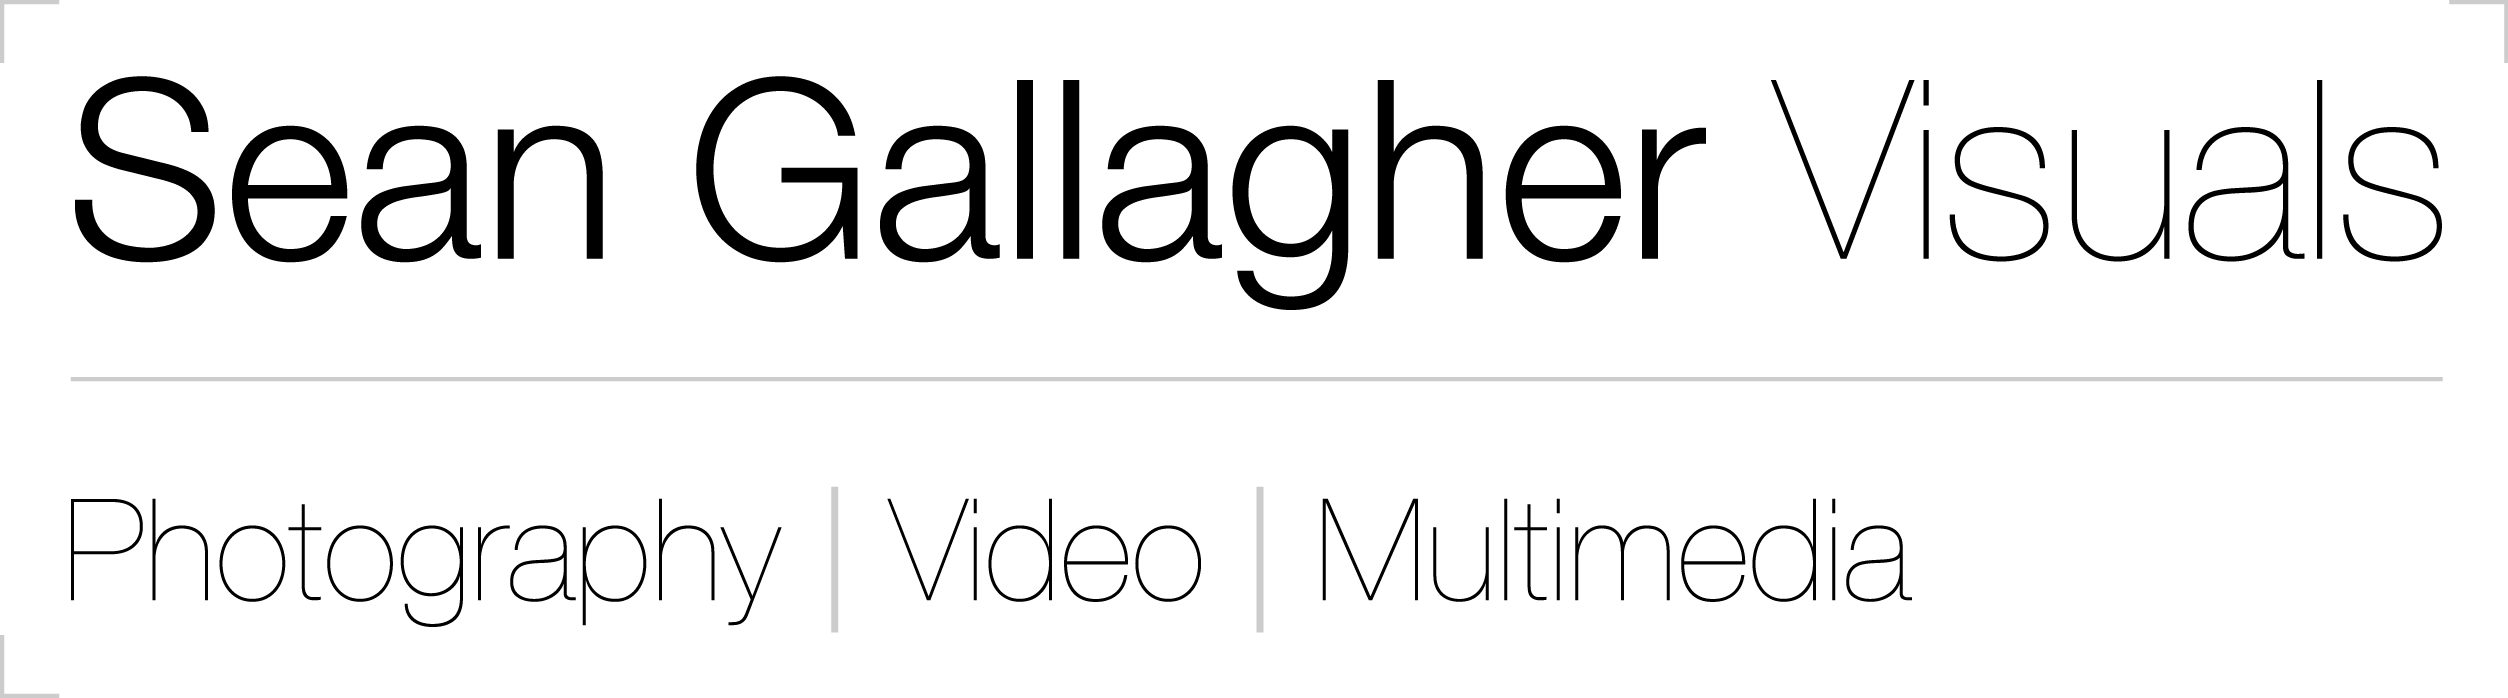 Sean Gallagher | Photography, Video & Multimedia